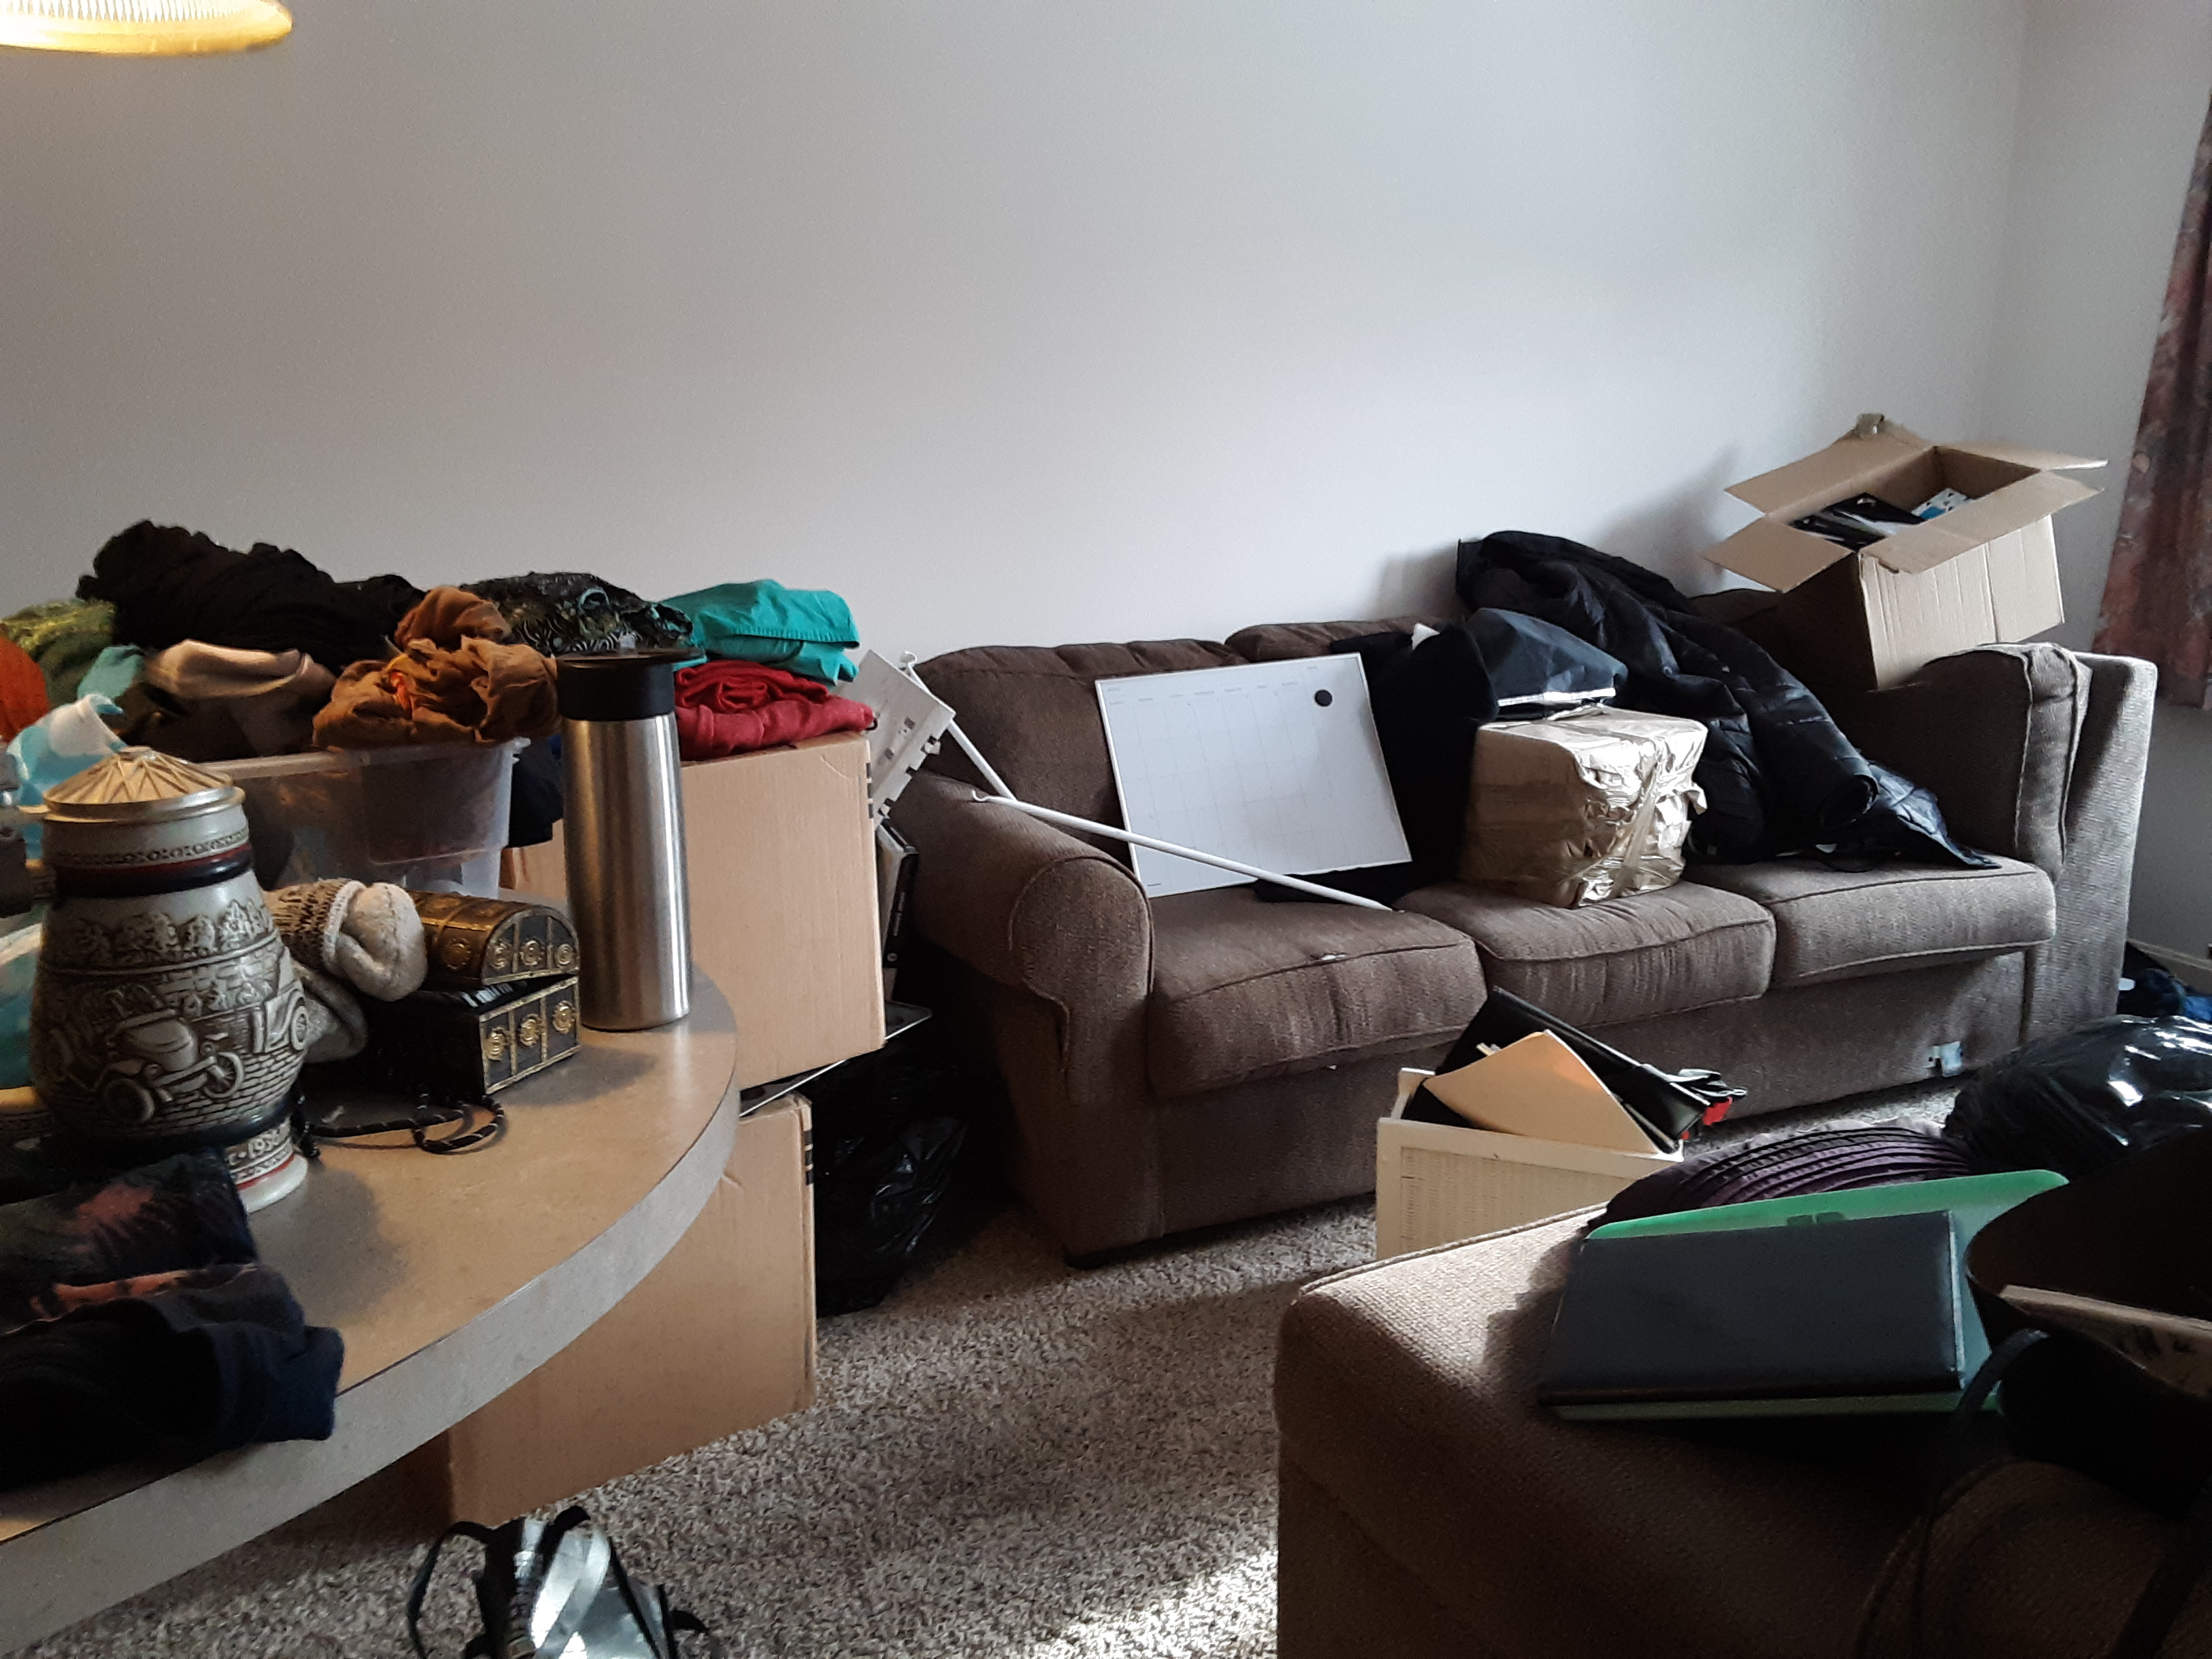 The living room - after moving, and before clearing it.